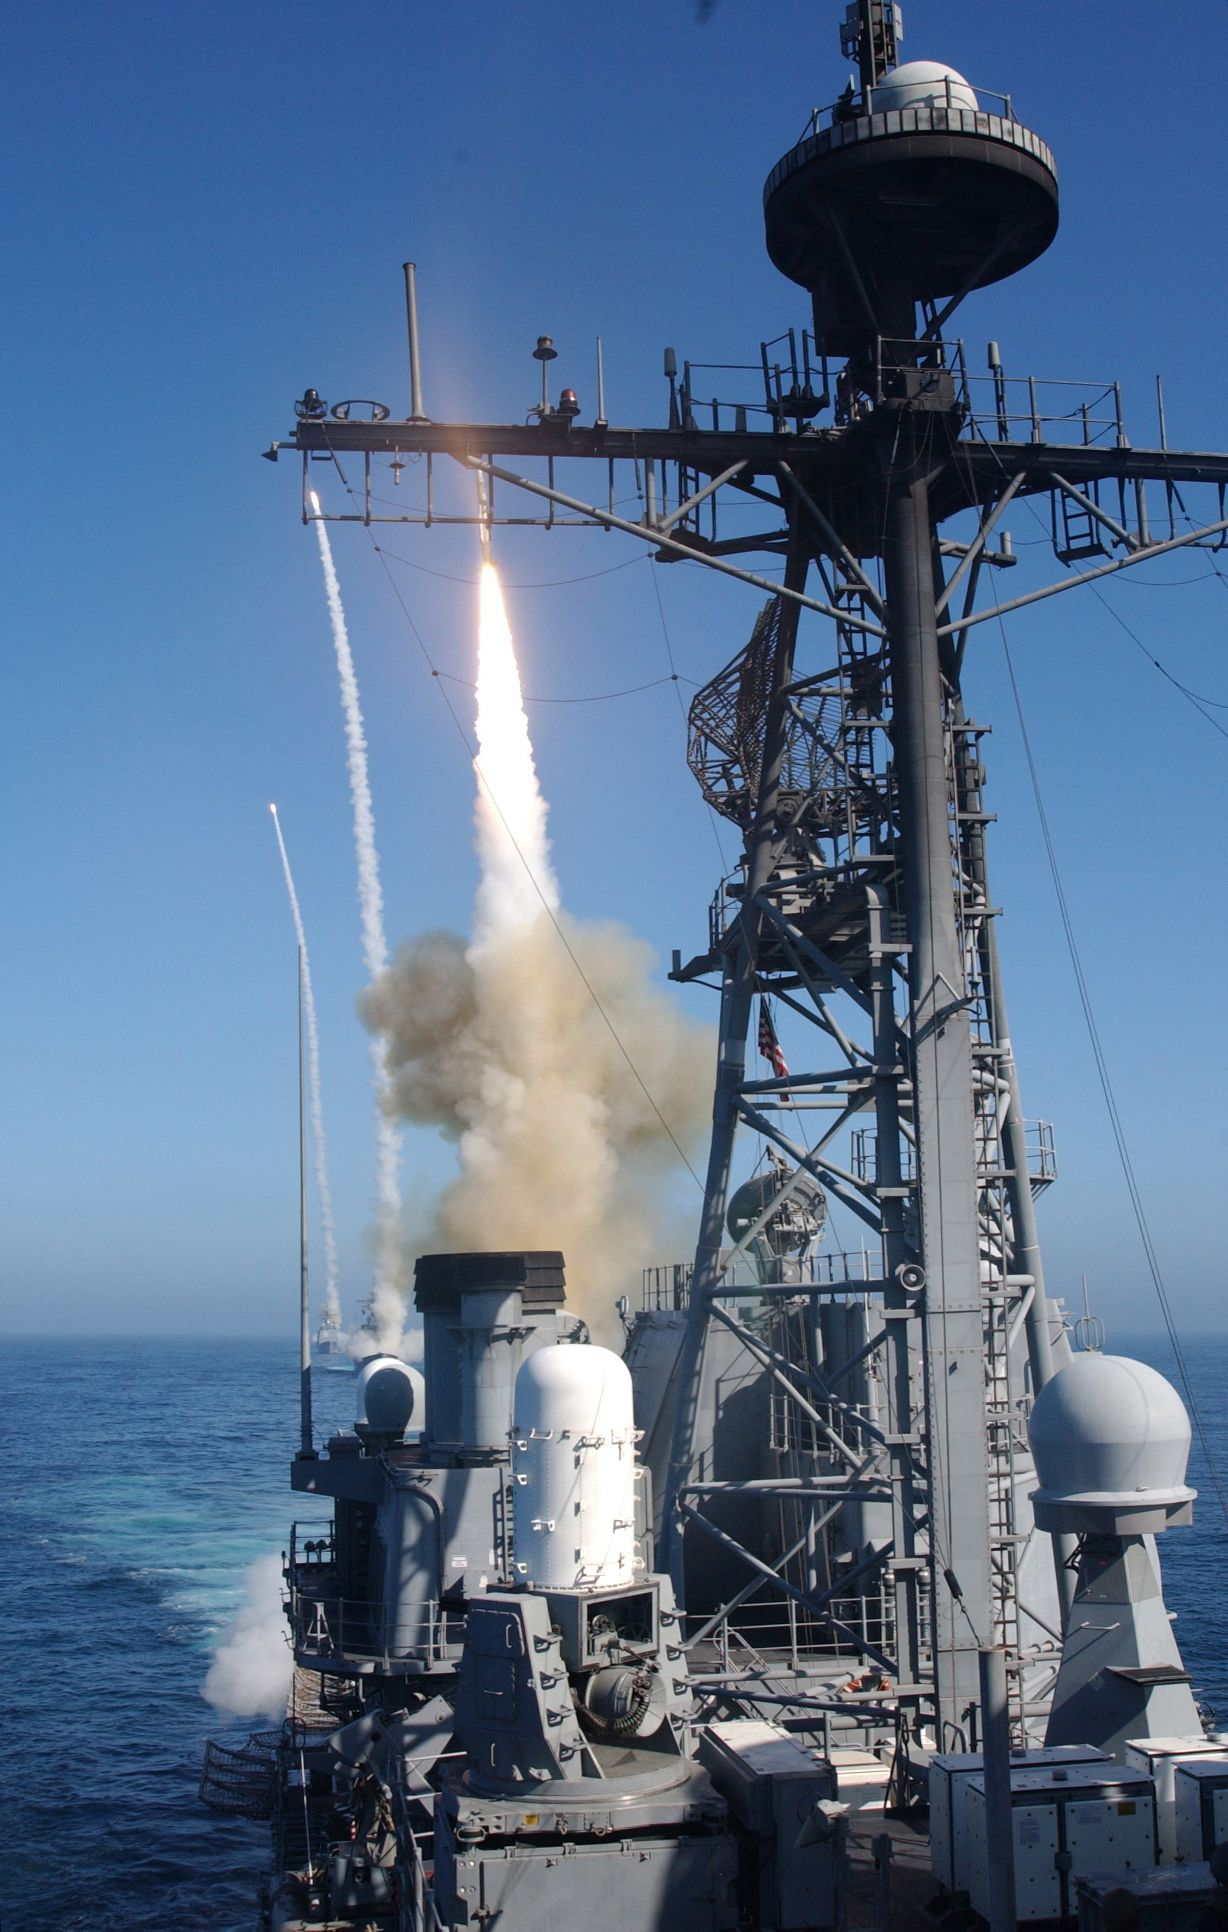 USS Bunker Hill leads two other surface ships firing a standard SM-2 surface-to-air missile near San Diego.